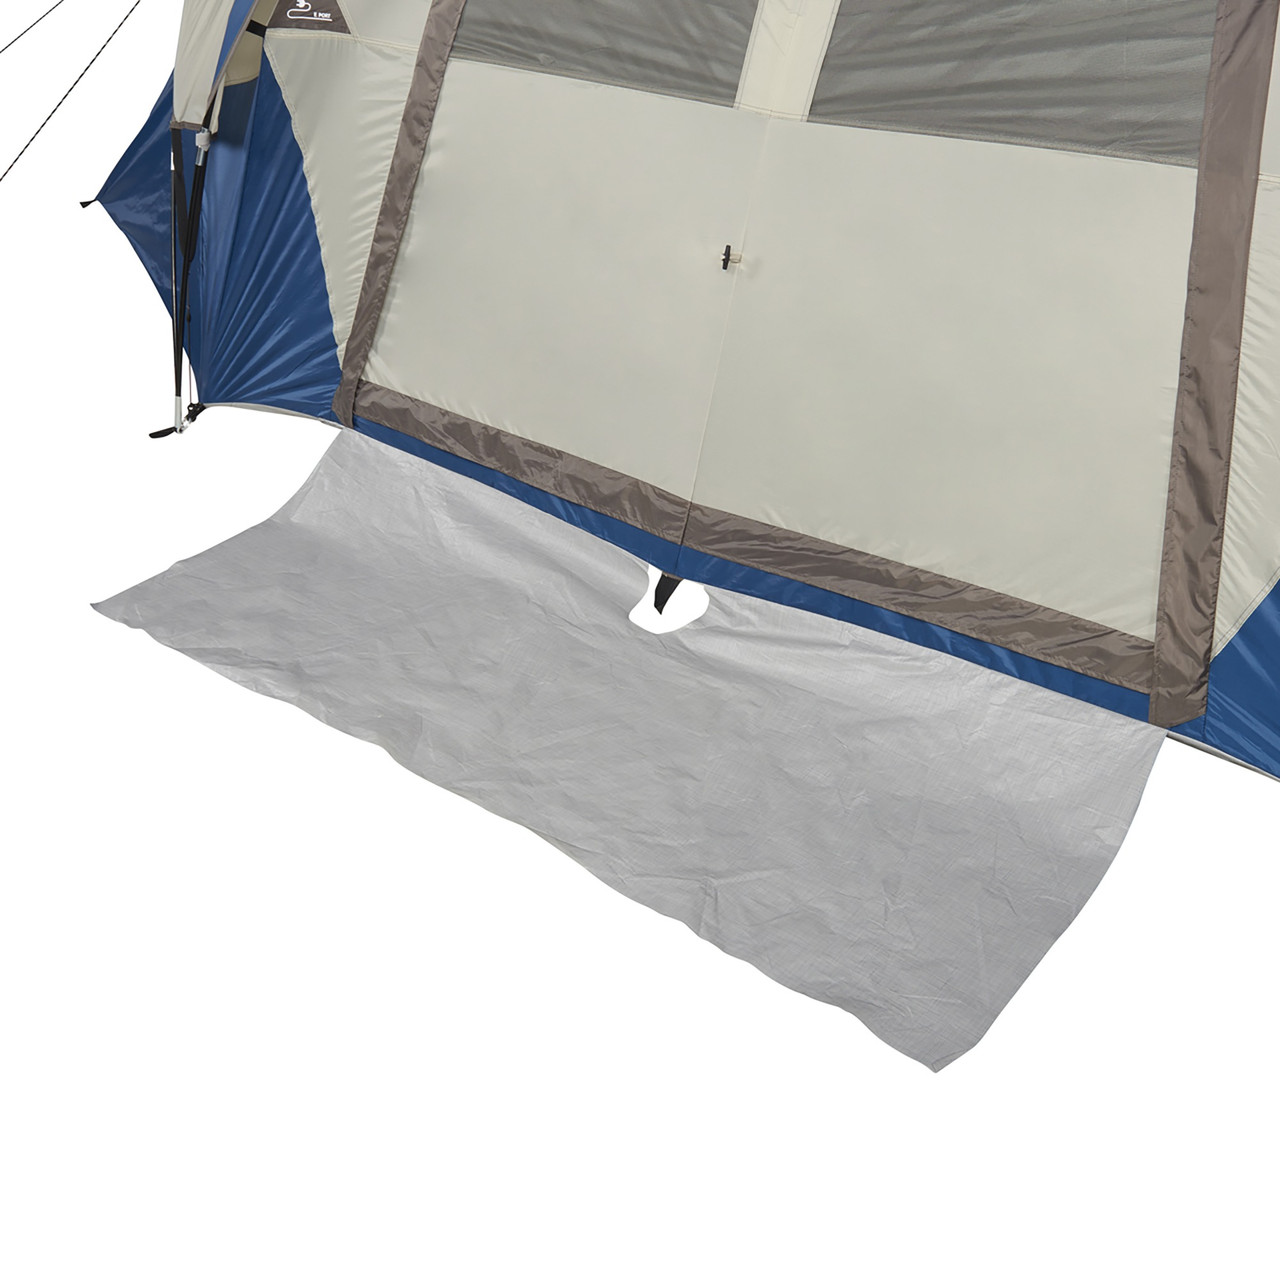 Wenzel Pinyon 10 Person Dome Tent, blue/white, showing floor mat